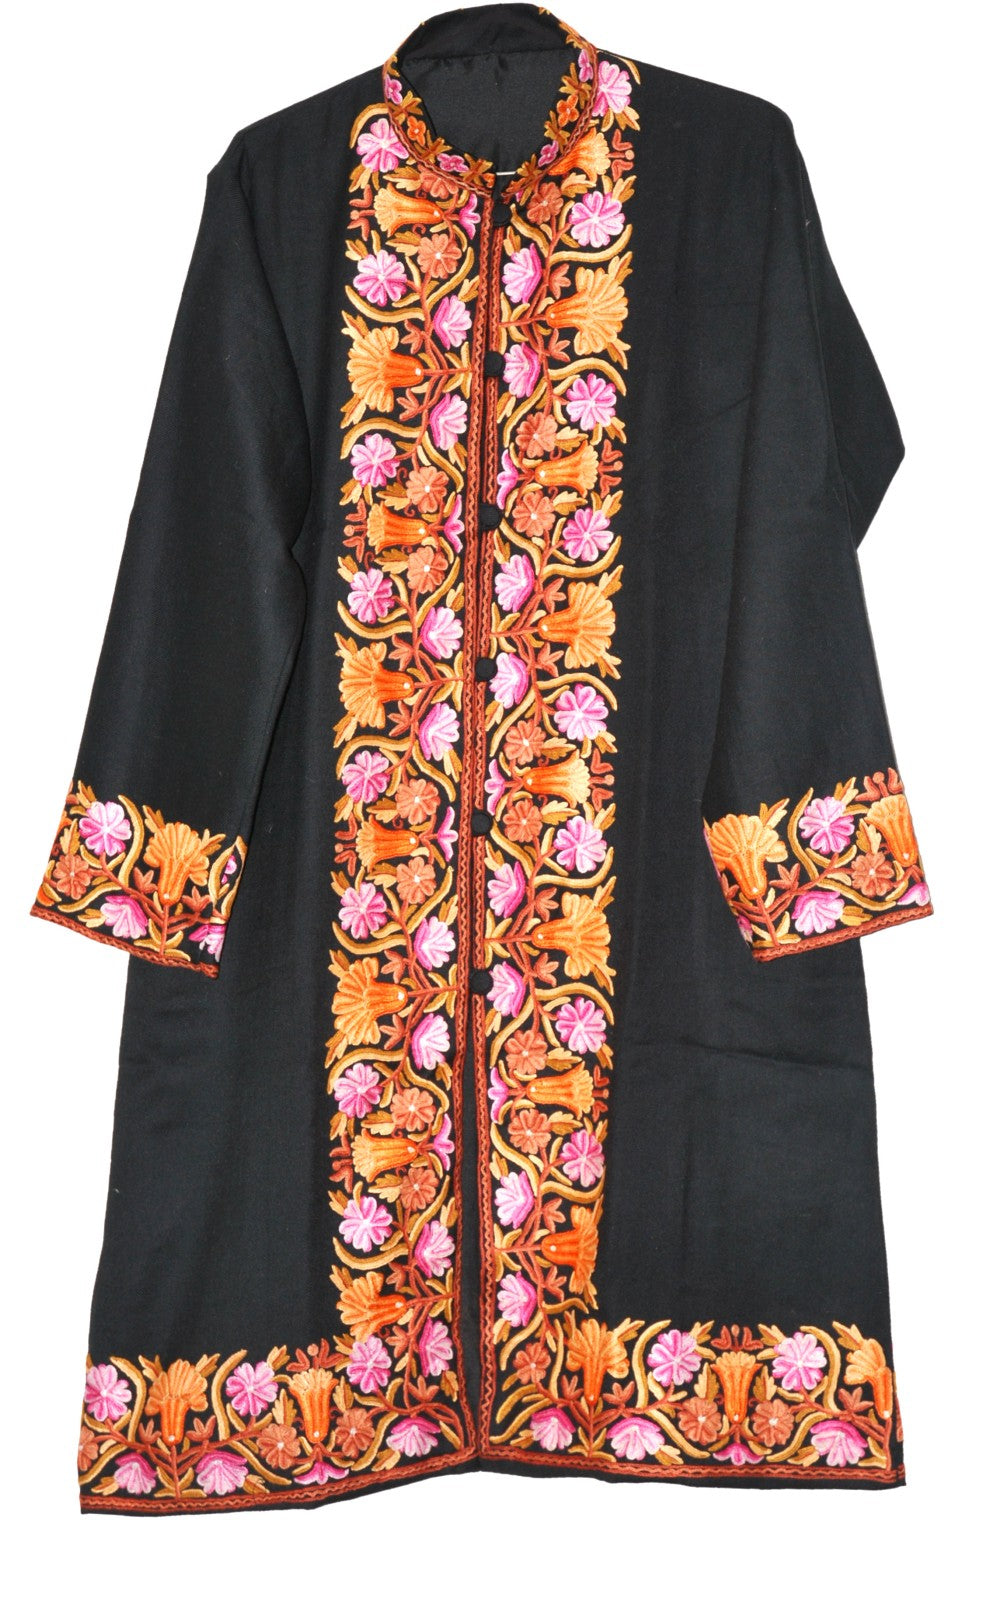 Embroidered Woolen Coat Black, Multicolor Embroidery #BD-122